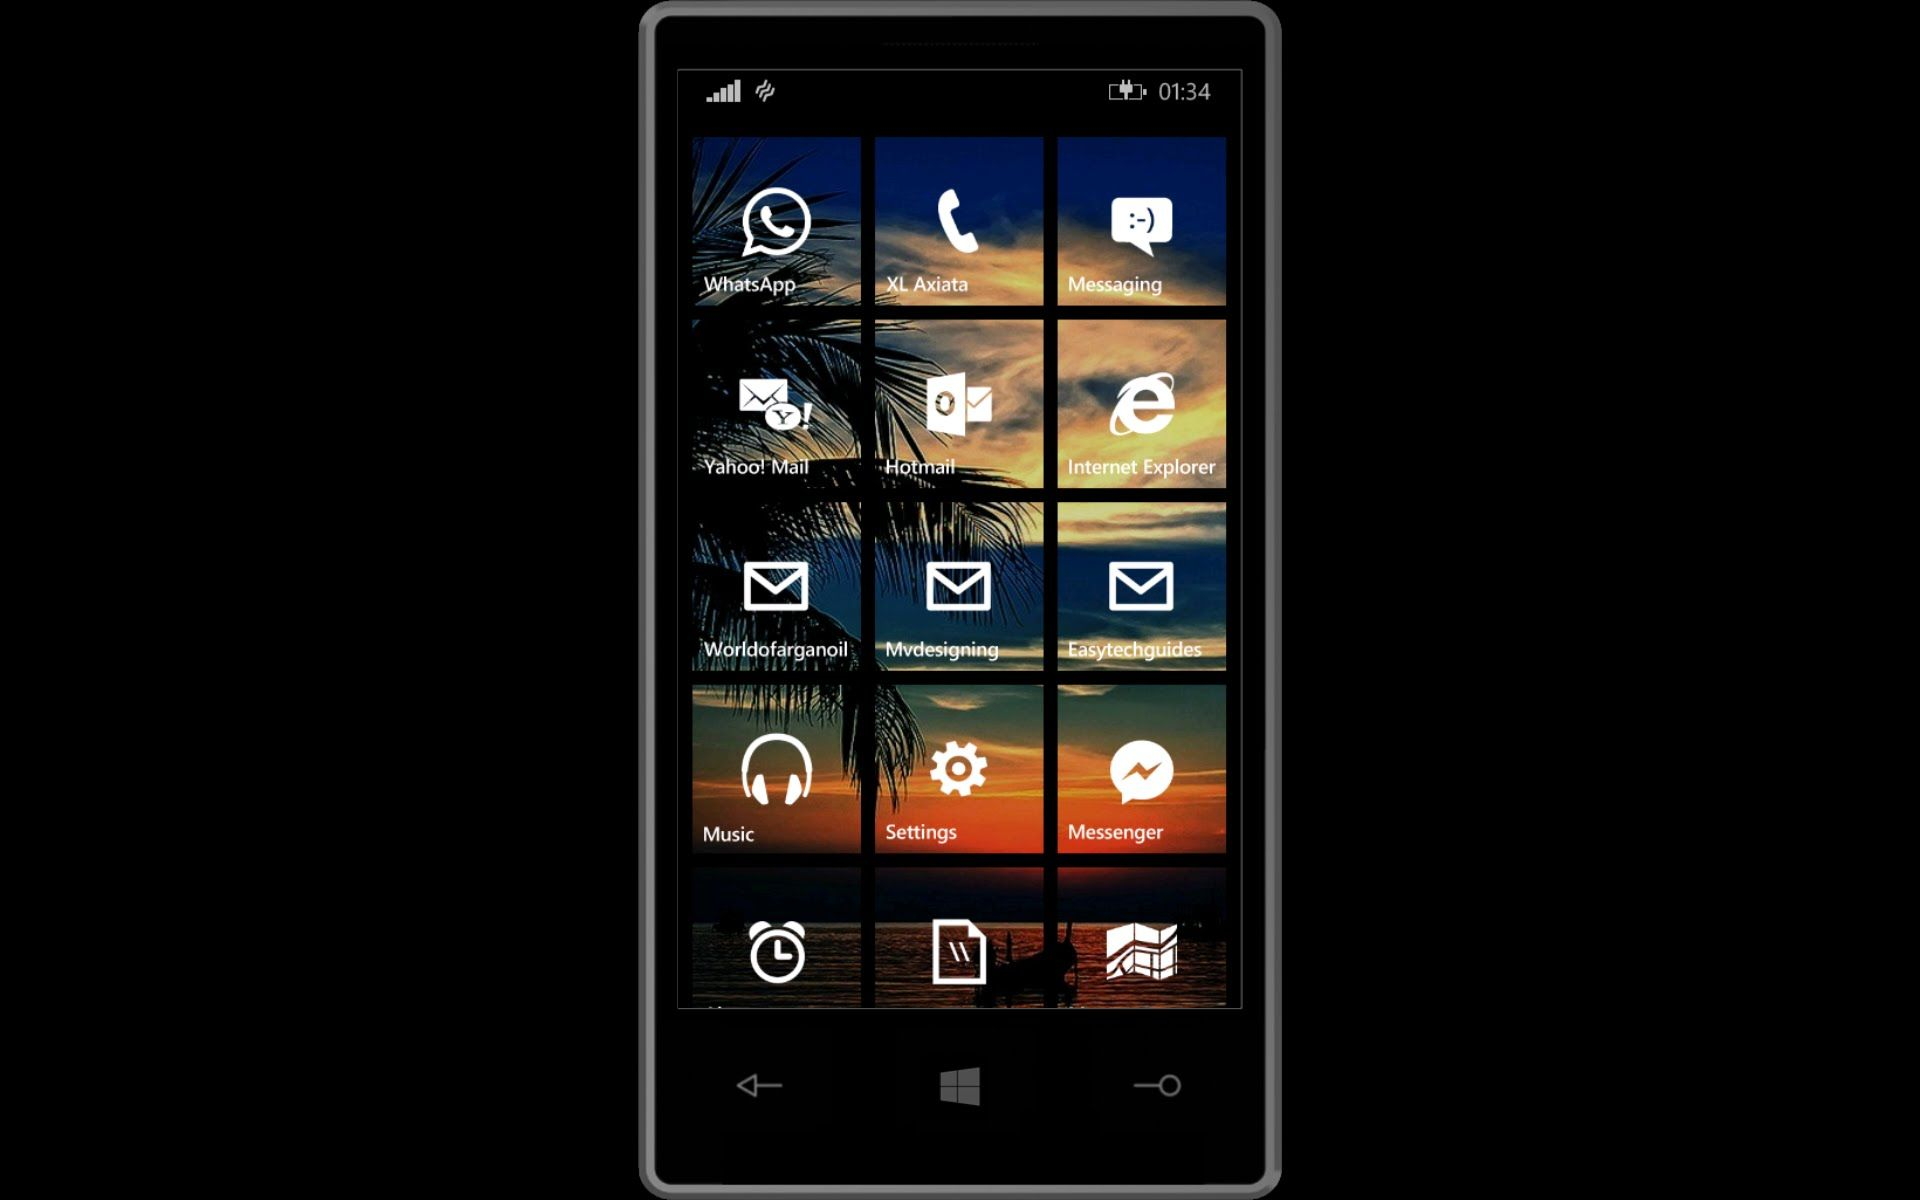 How to Change a Whatsapp Chat Background on Nokia Lumia